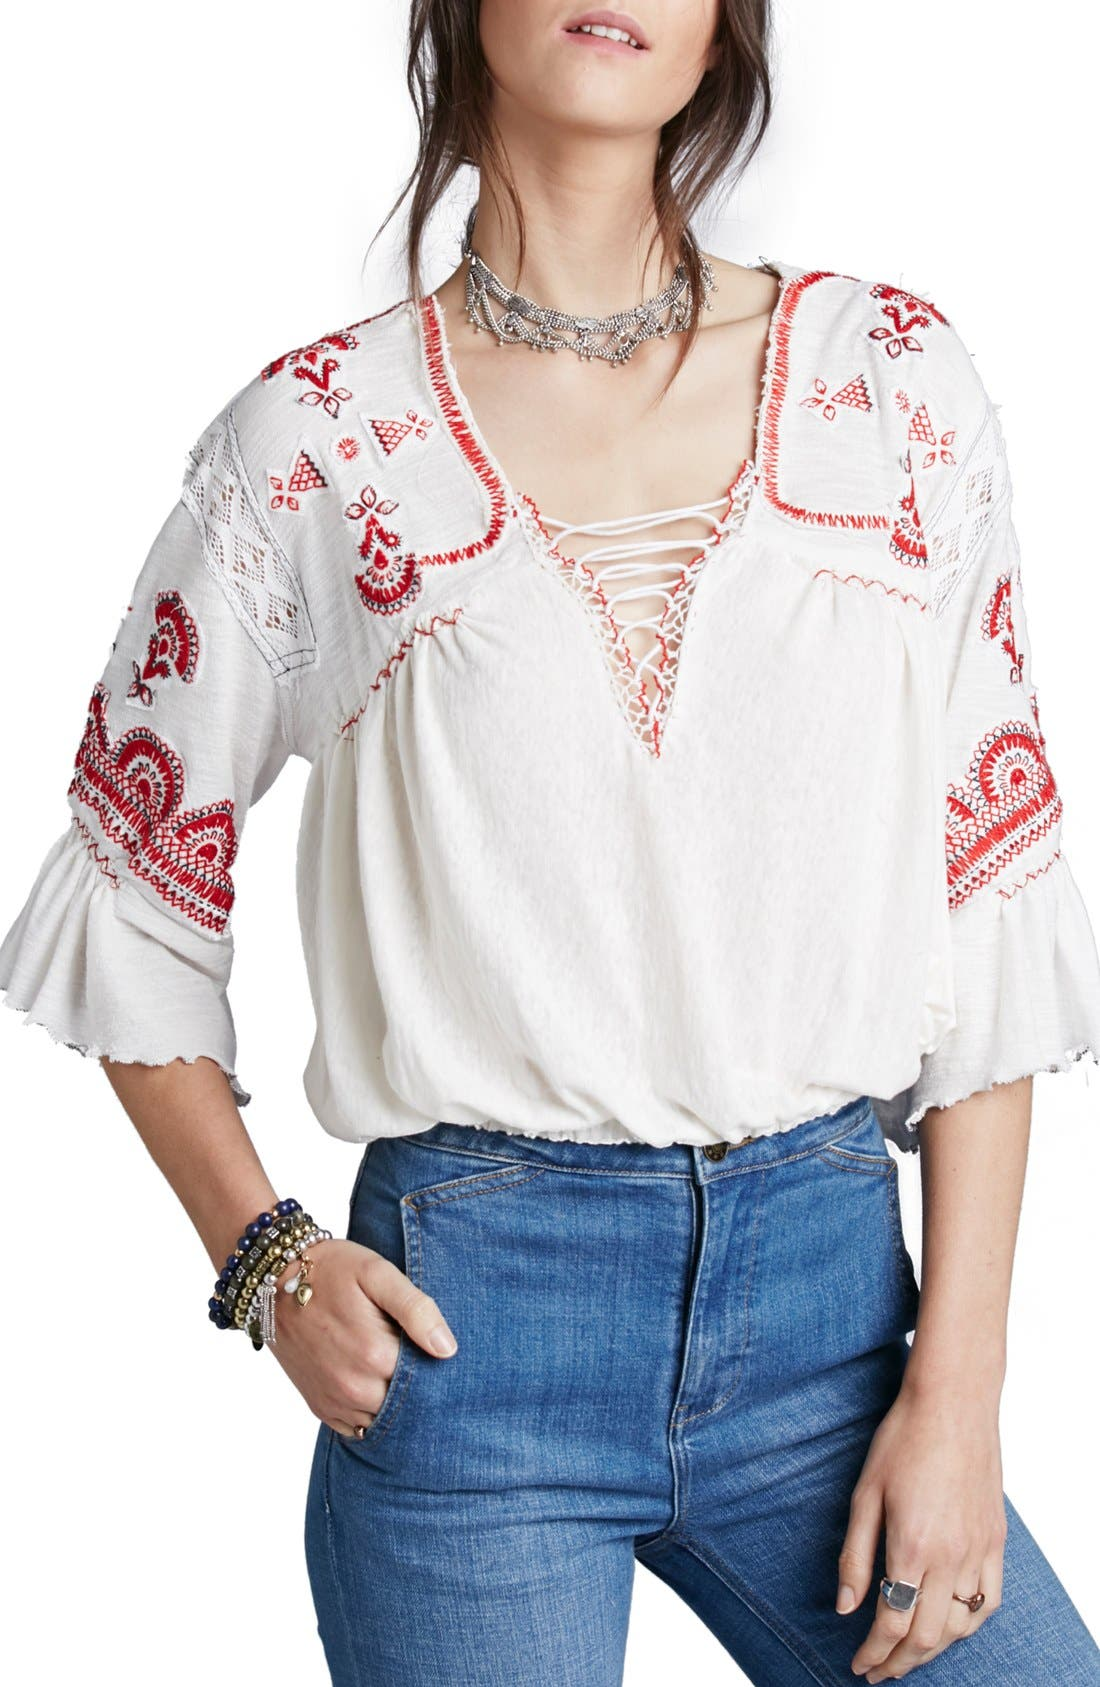 Alternate Image 1 Selected - Free People 'Chiquita' Embroidered Peasant Top